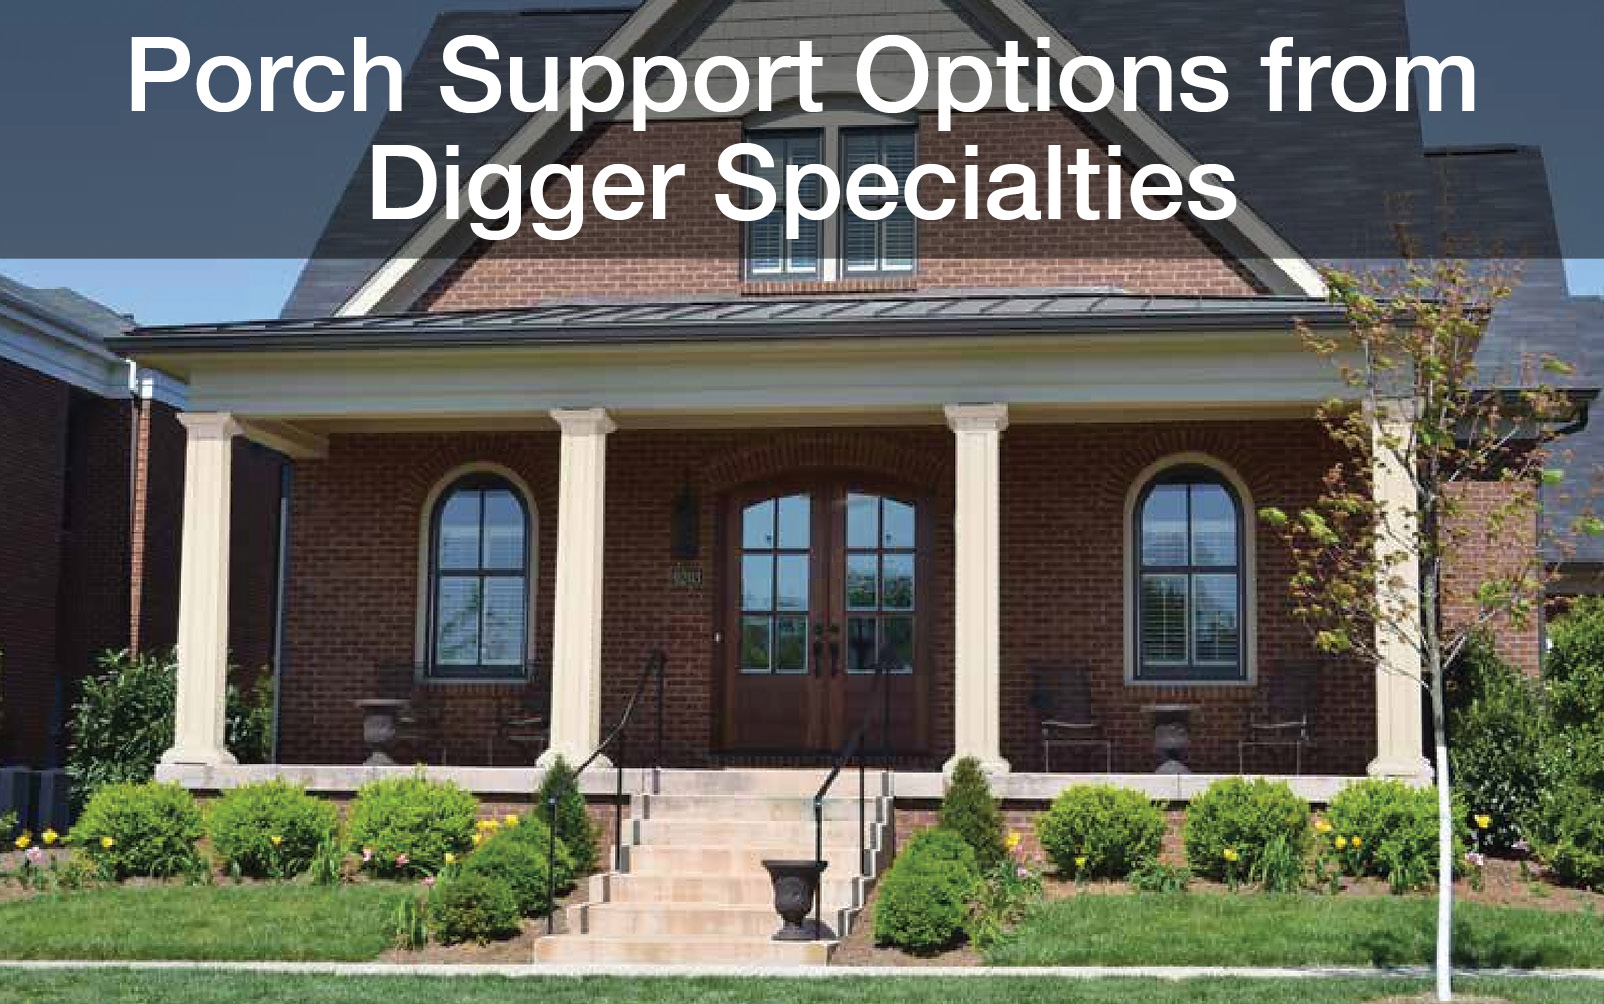 Porch Support Options from Digger Specialties